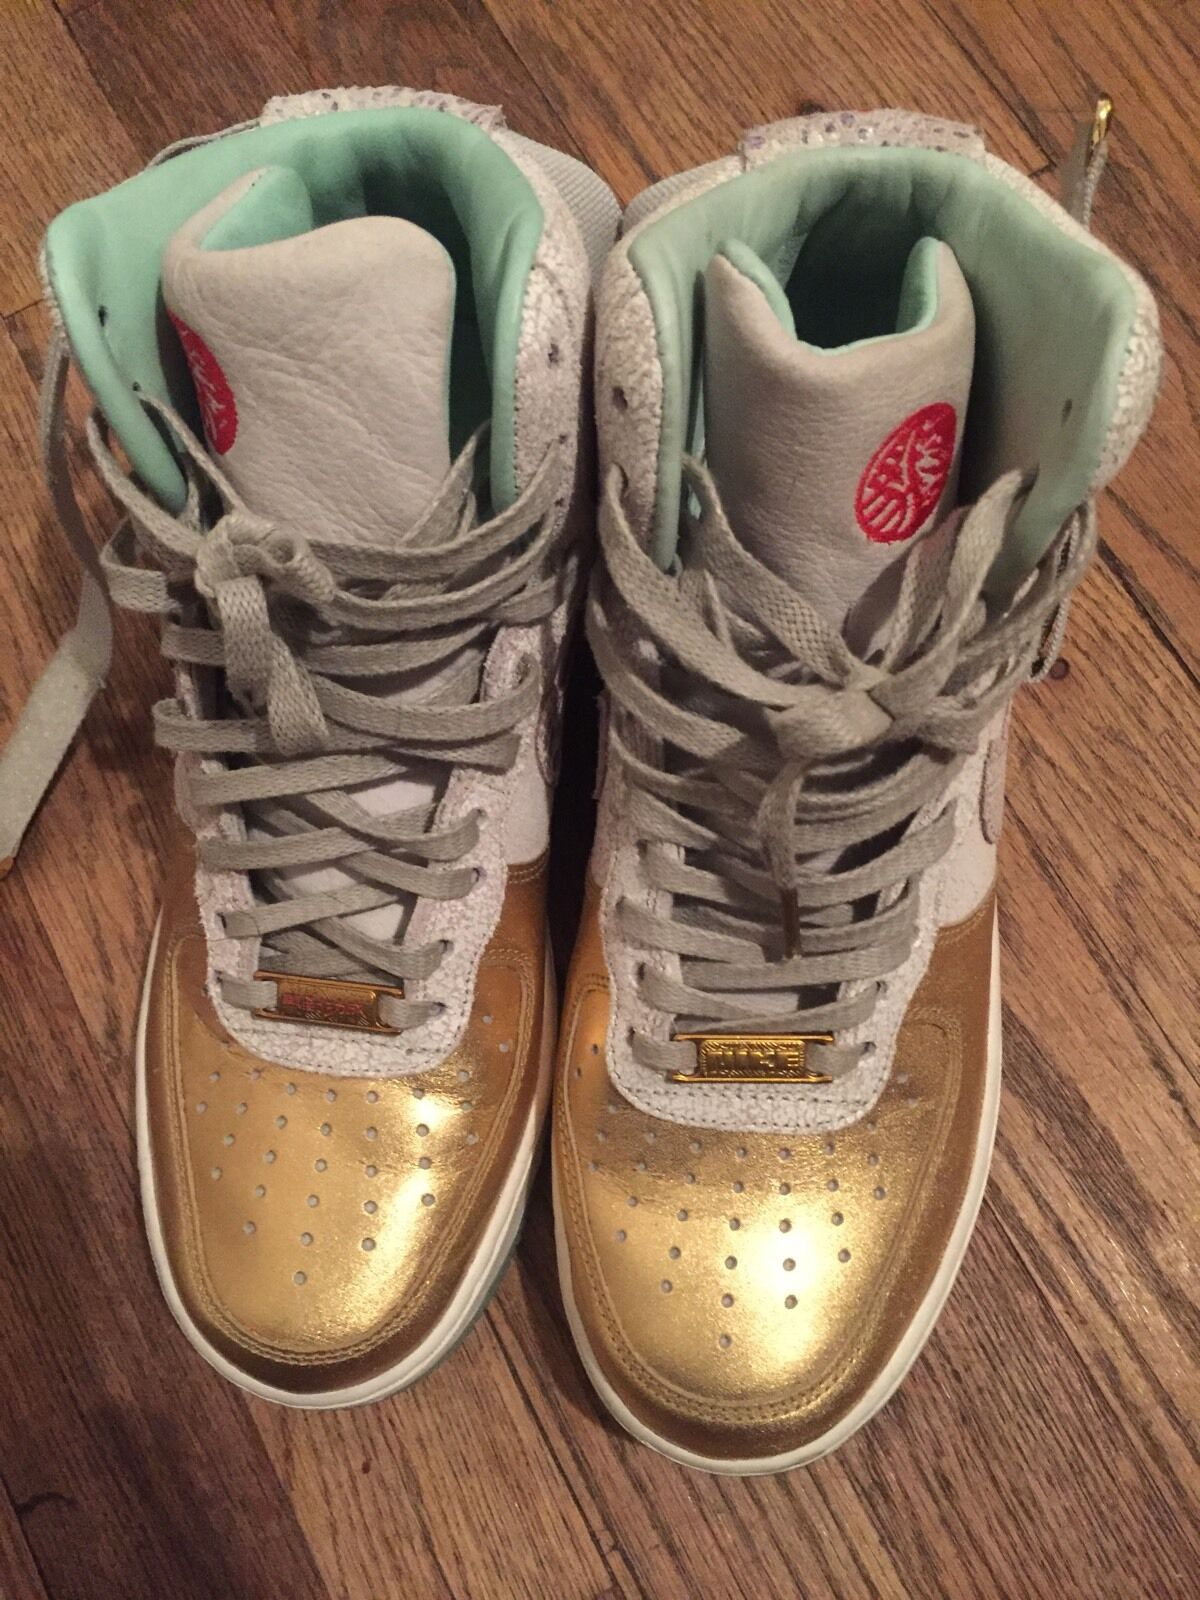 Nike YOTH High Air Force One Gold Size 7.5